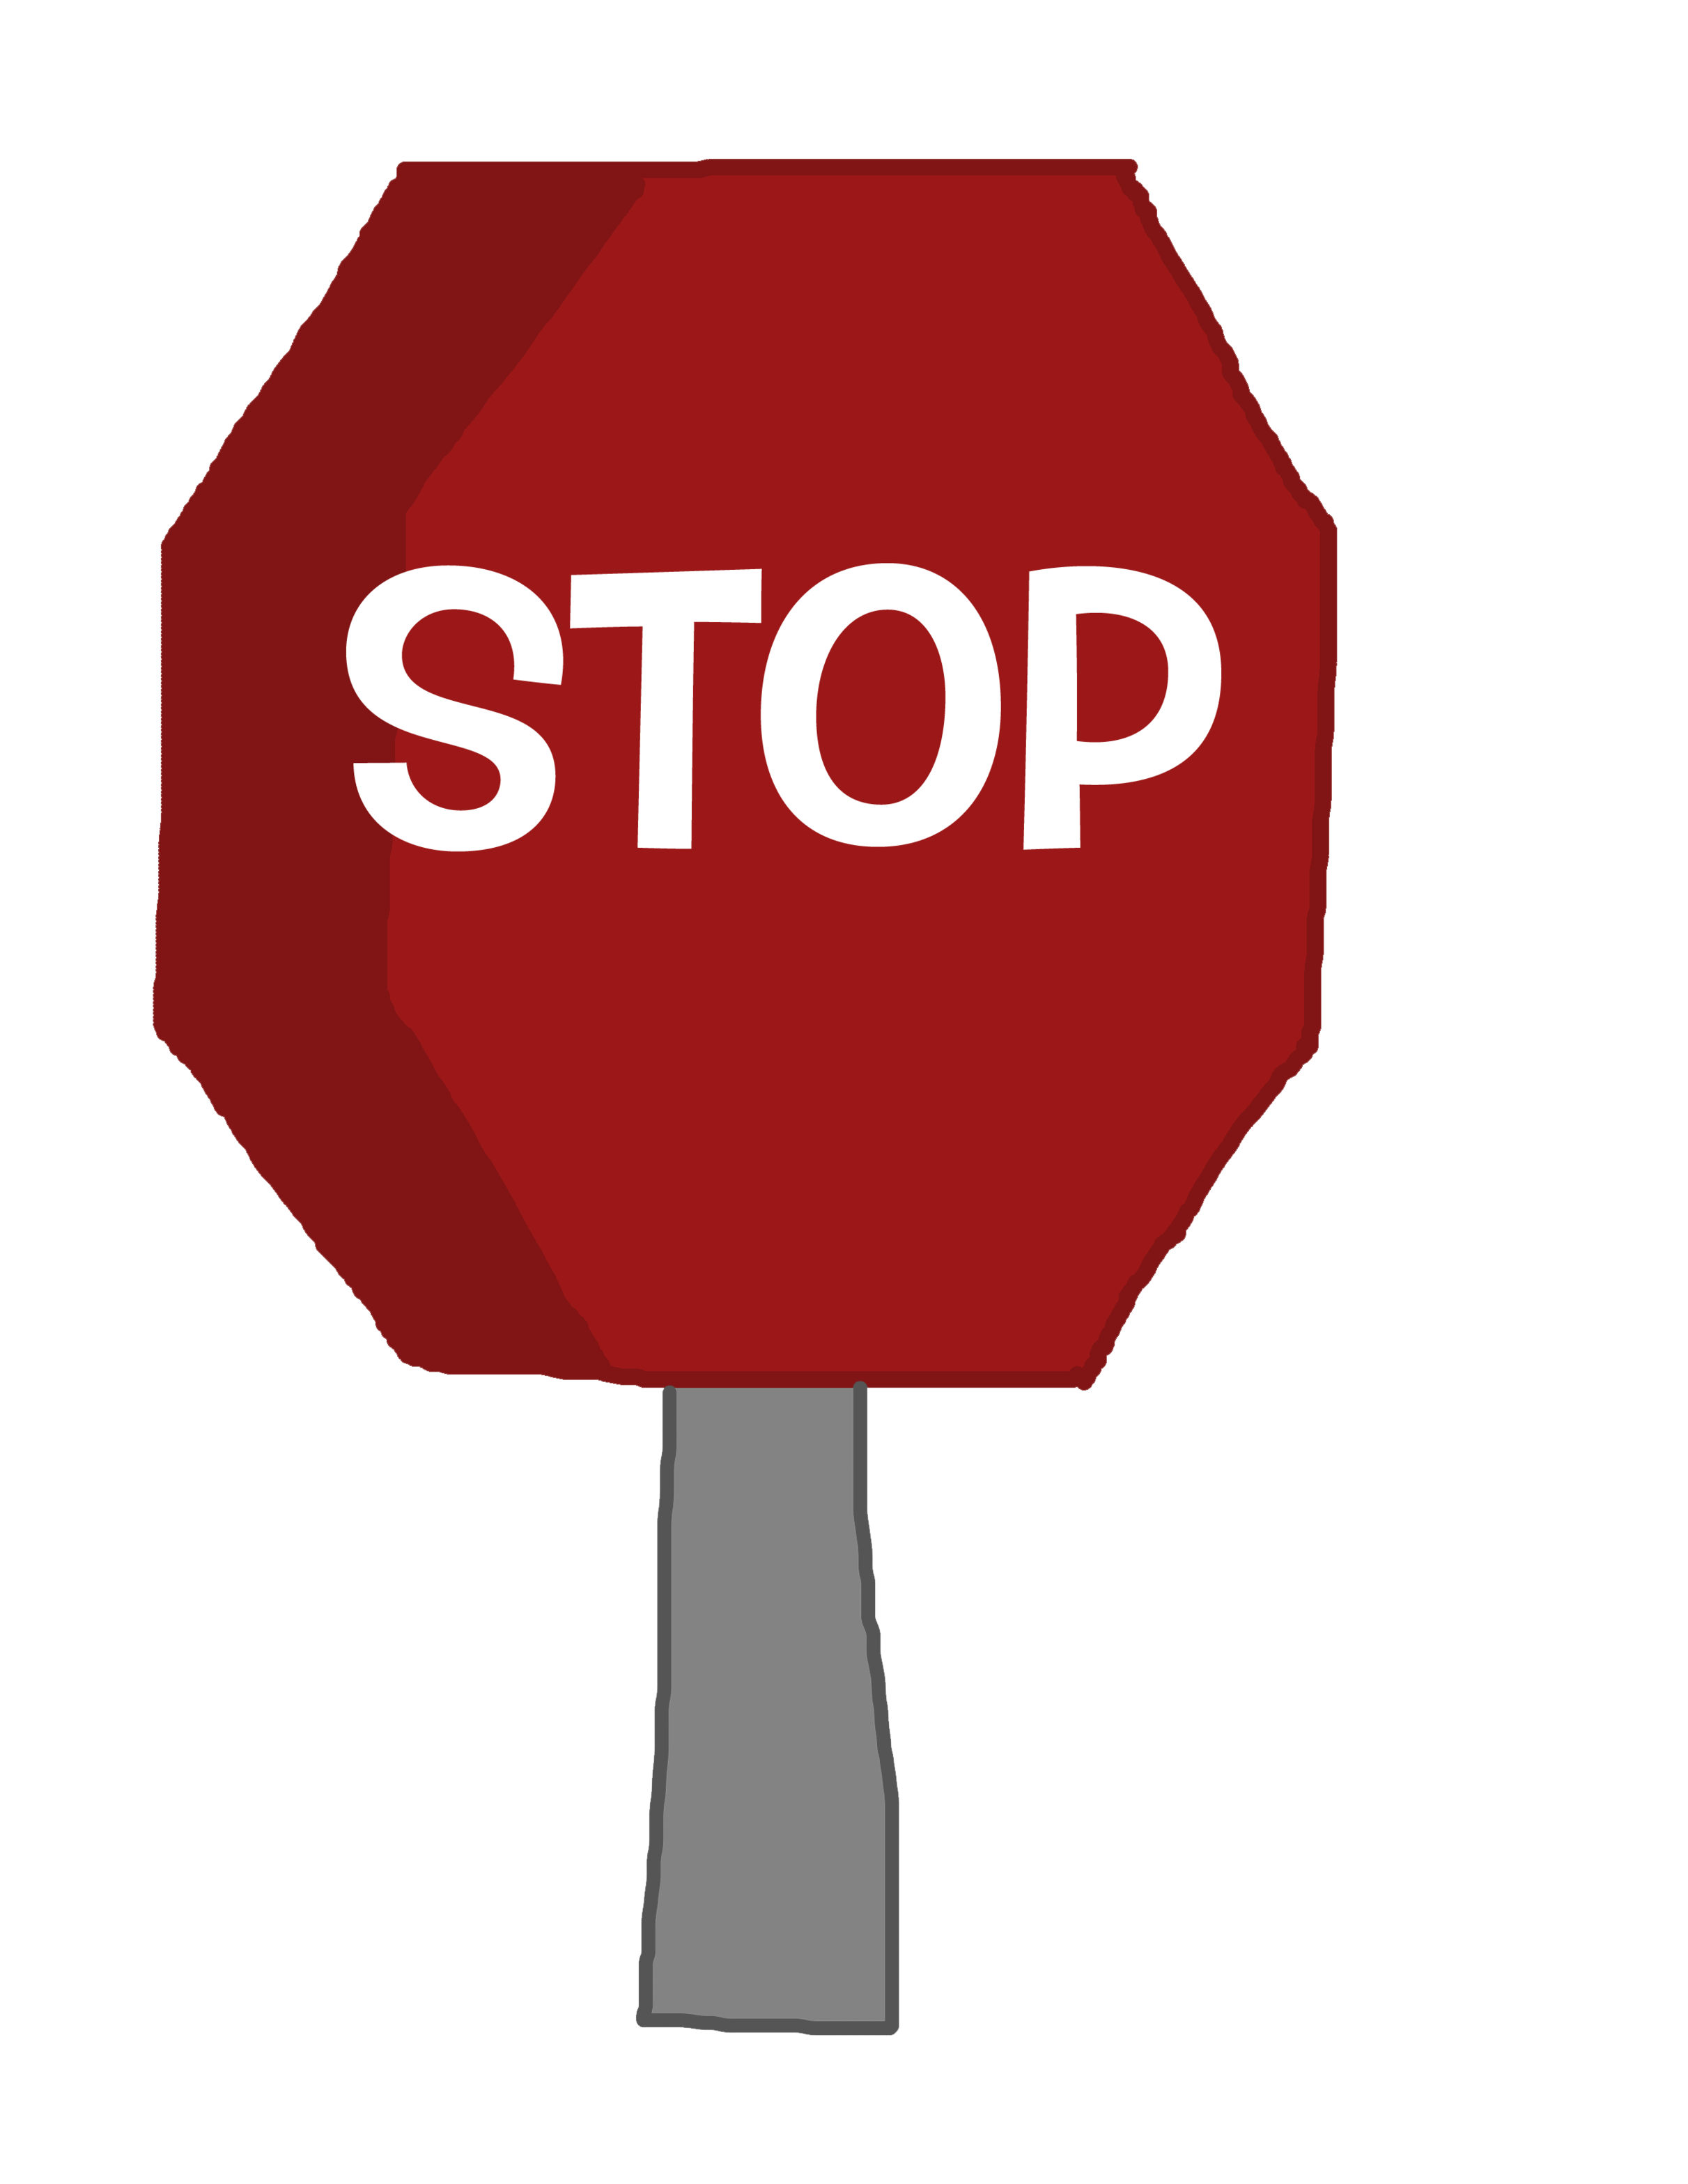 Stop Sign Png - ClipArt Best